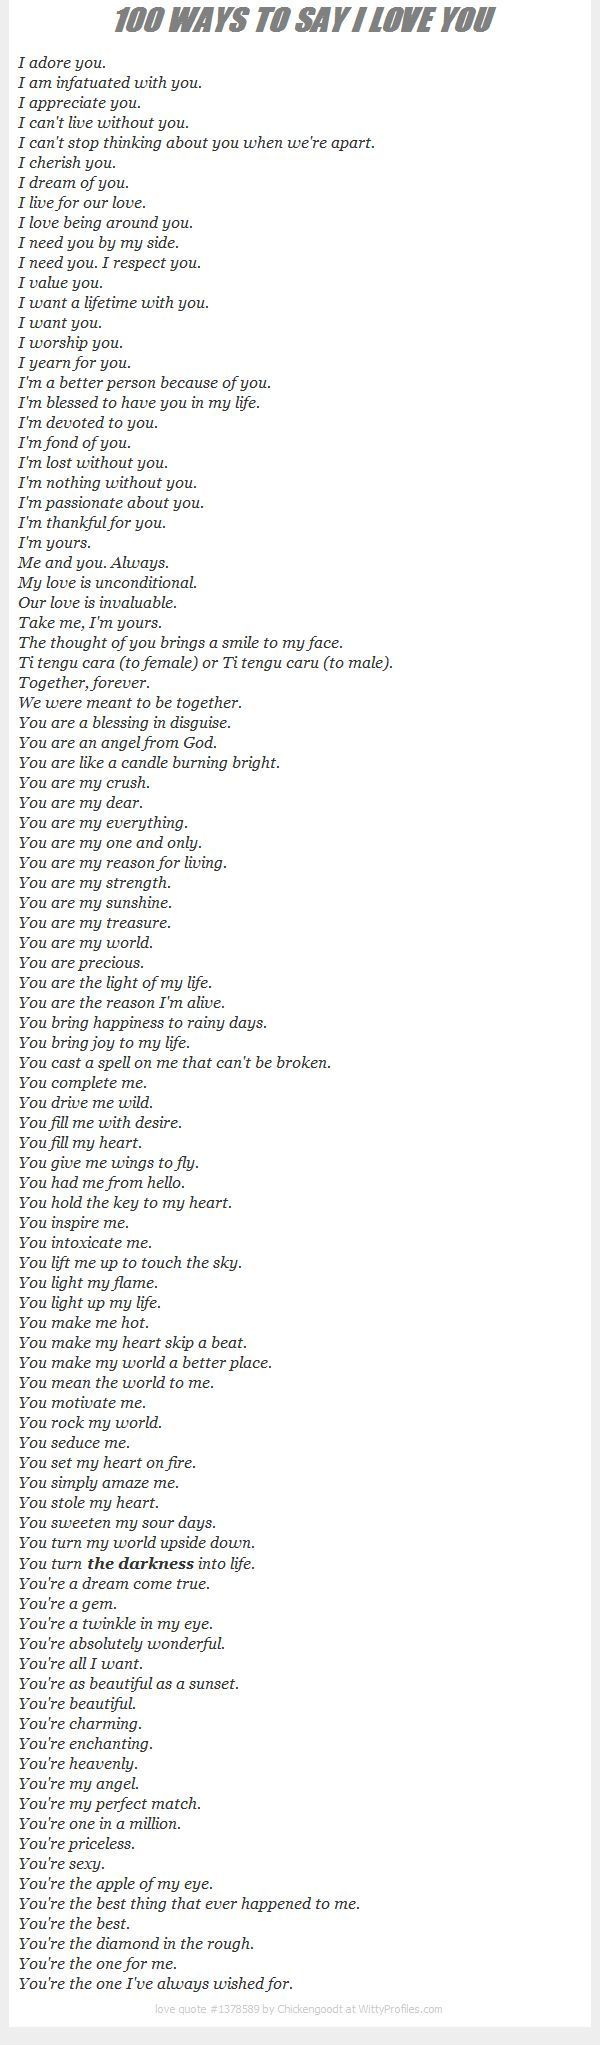 100 Ways To Say I Love You Quotes About Boyfriend, Love Quotes Crushes Boyfriends, Adorable Boyfriend Quotes, Love Quote... - Relationship Quotes